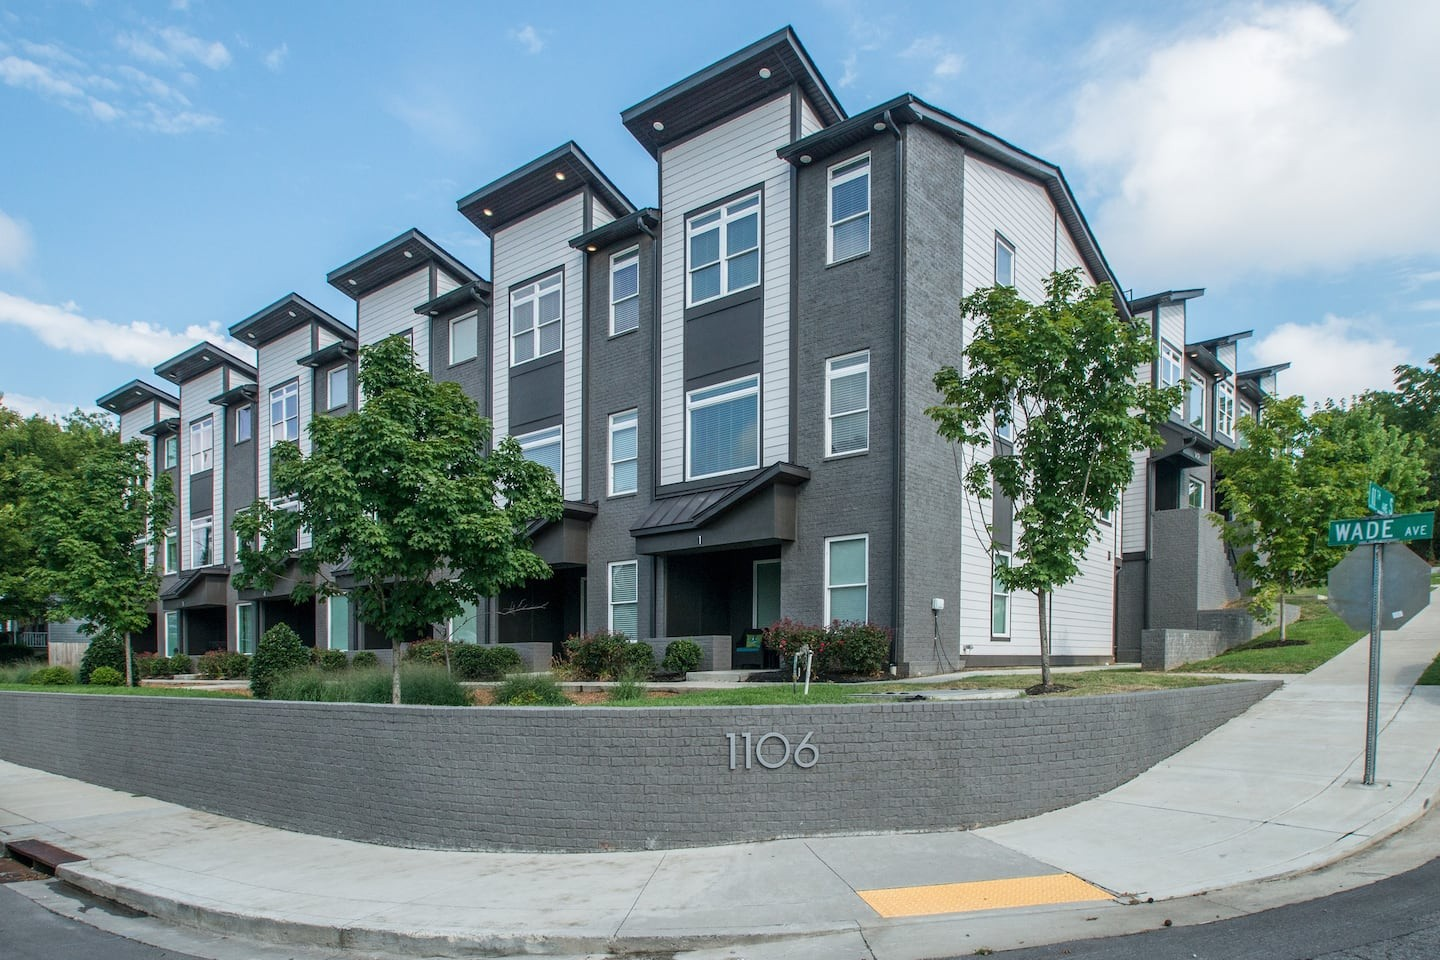 1106 Wade Avenue Townhomes Real Estate Listings Main Image